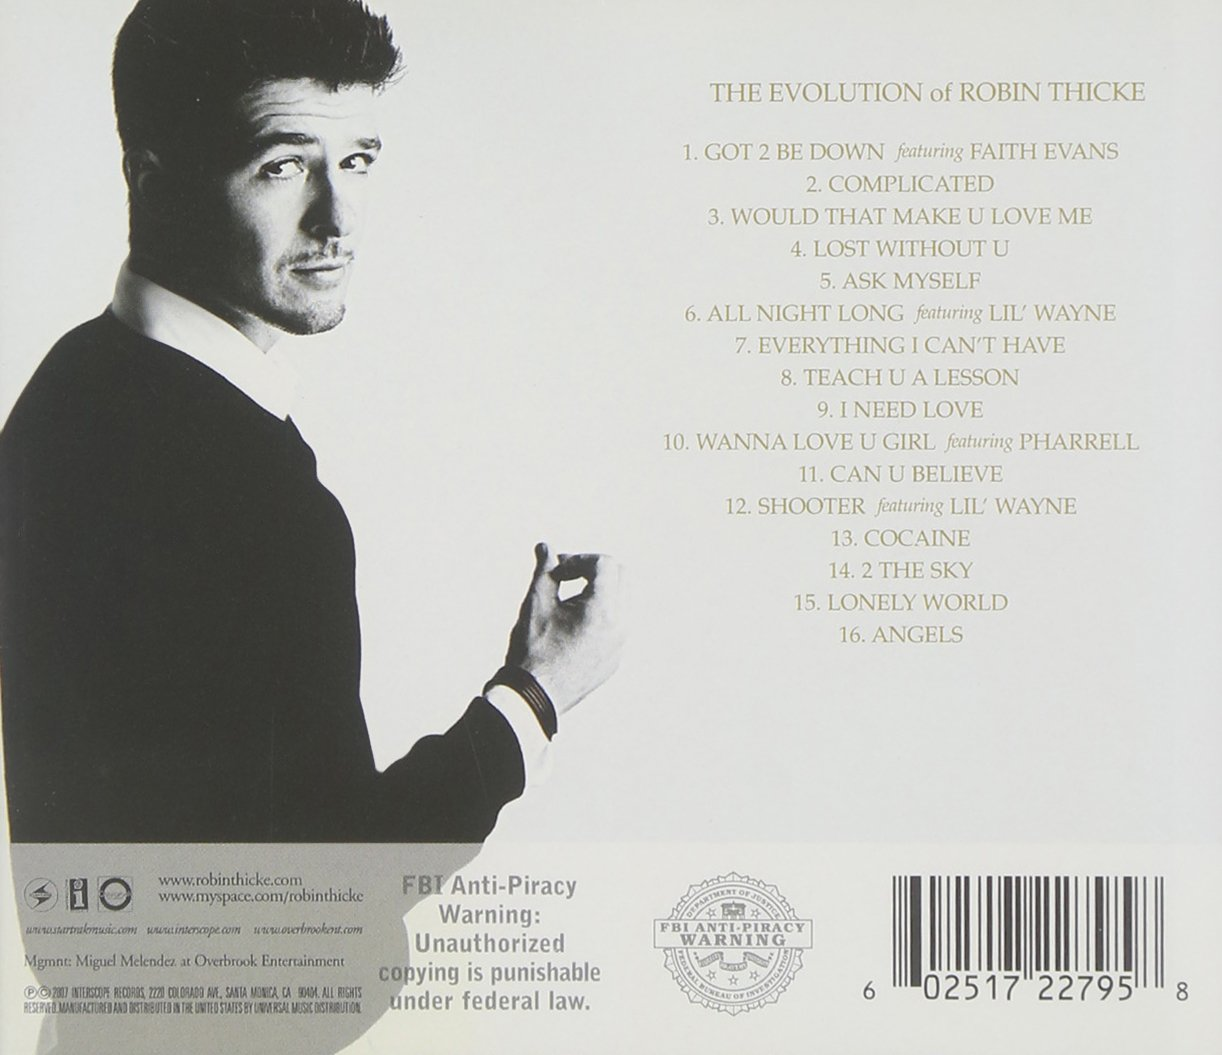 Robin Thicke-The Evolution Of Robin Thicke Full Album Zip